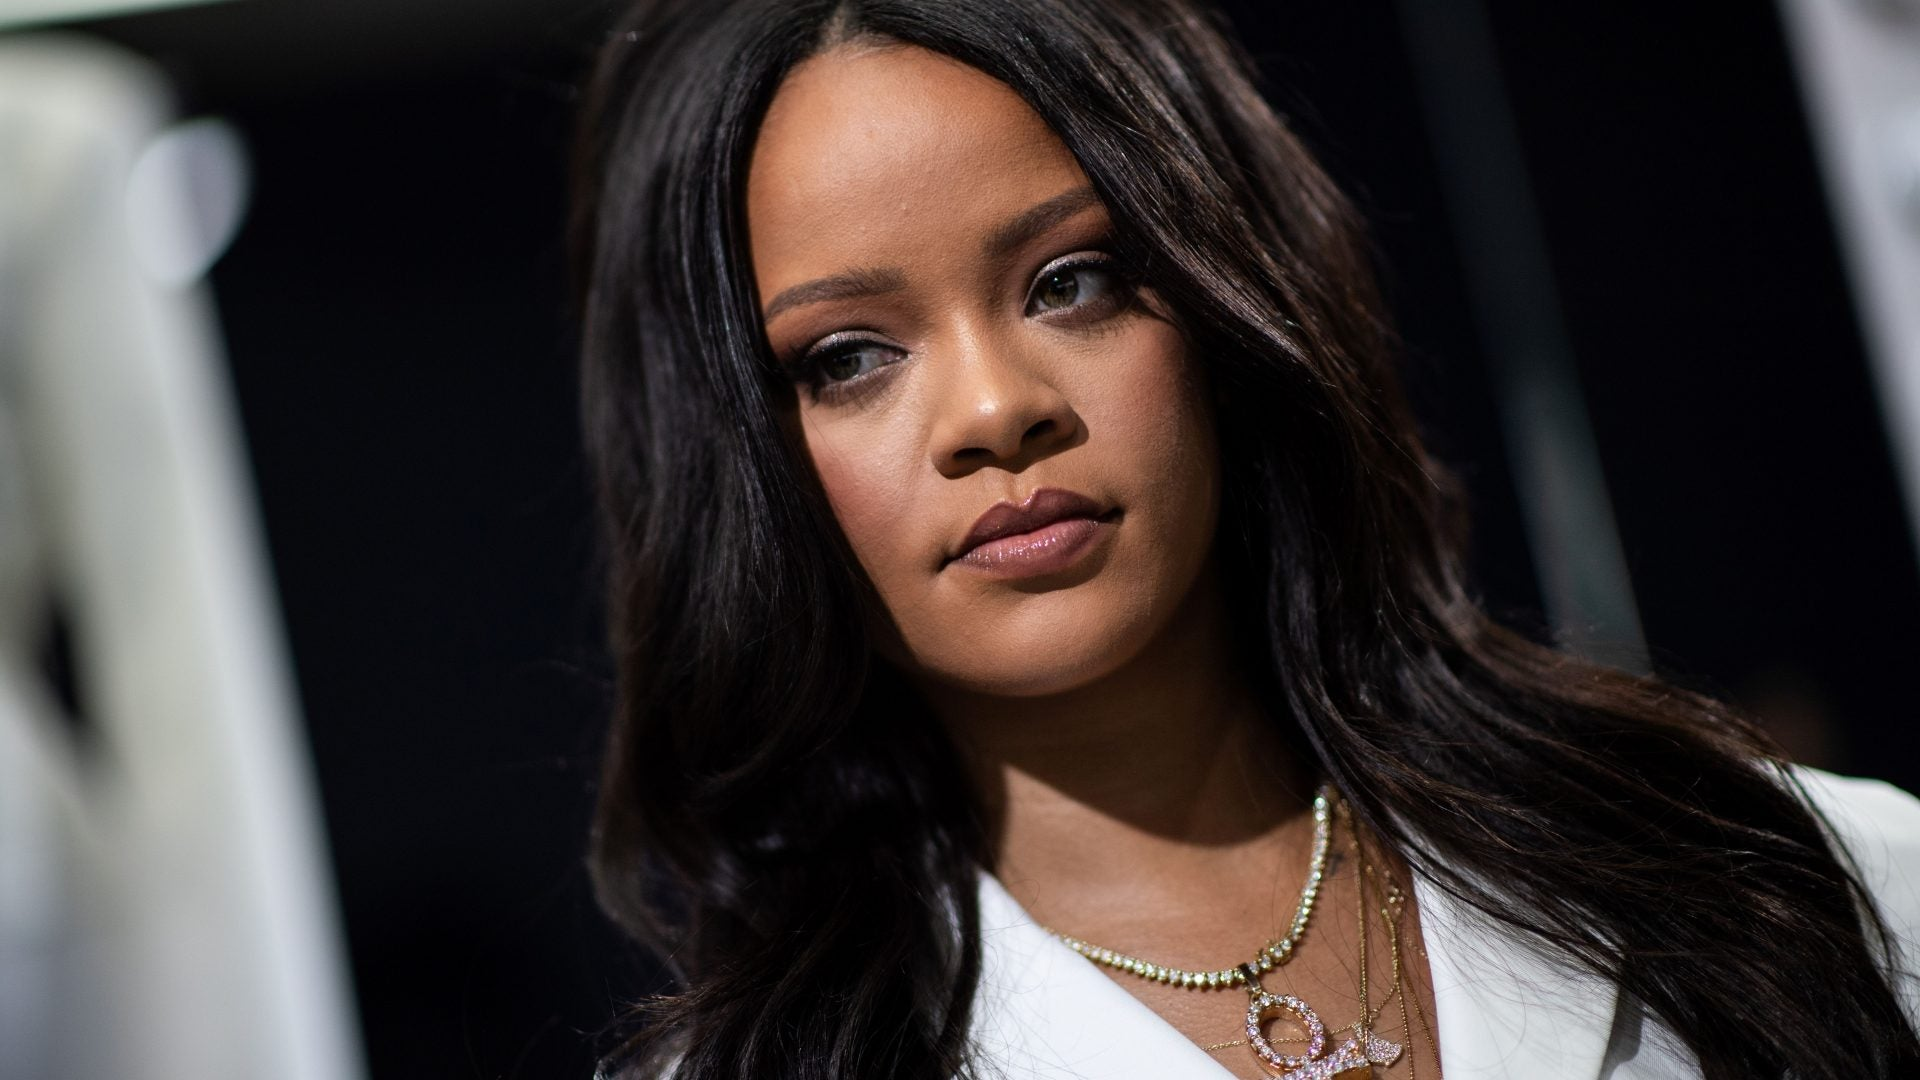 Rihanna Opens Up About Her Relationship With Boyfriend Hassan Jameel: 'It Matters To Me'